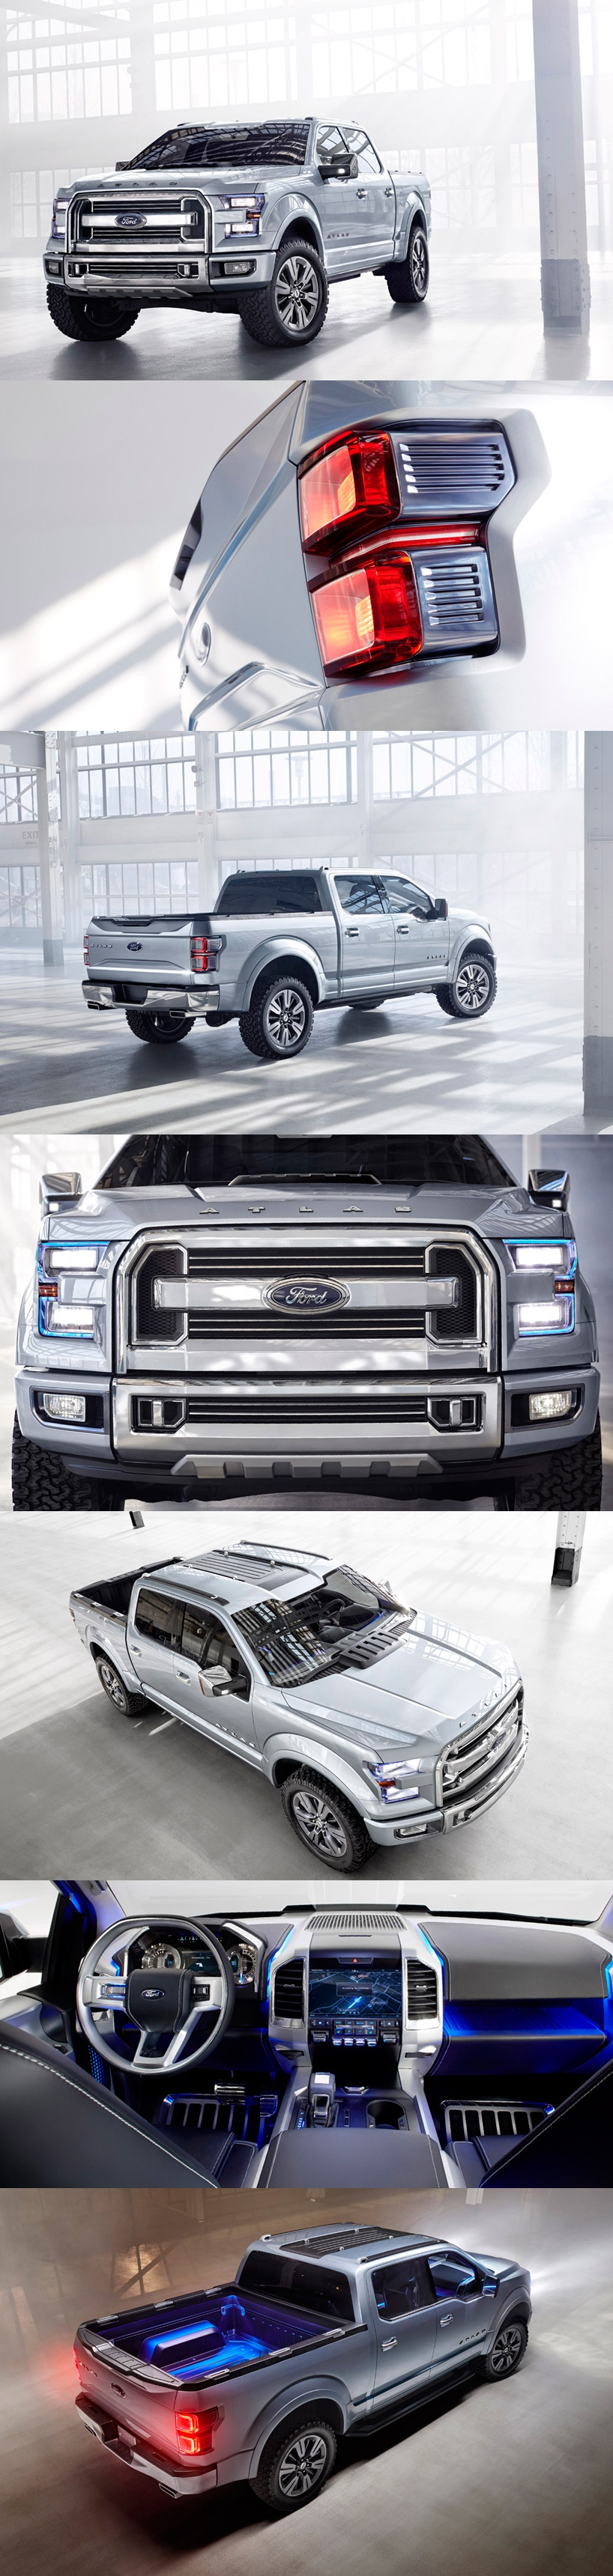 Concept to reality 2013 ford atlas vs super chief vs f 250 super duty platinum car reviews pinterest ford cars and wheels